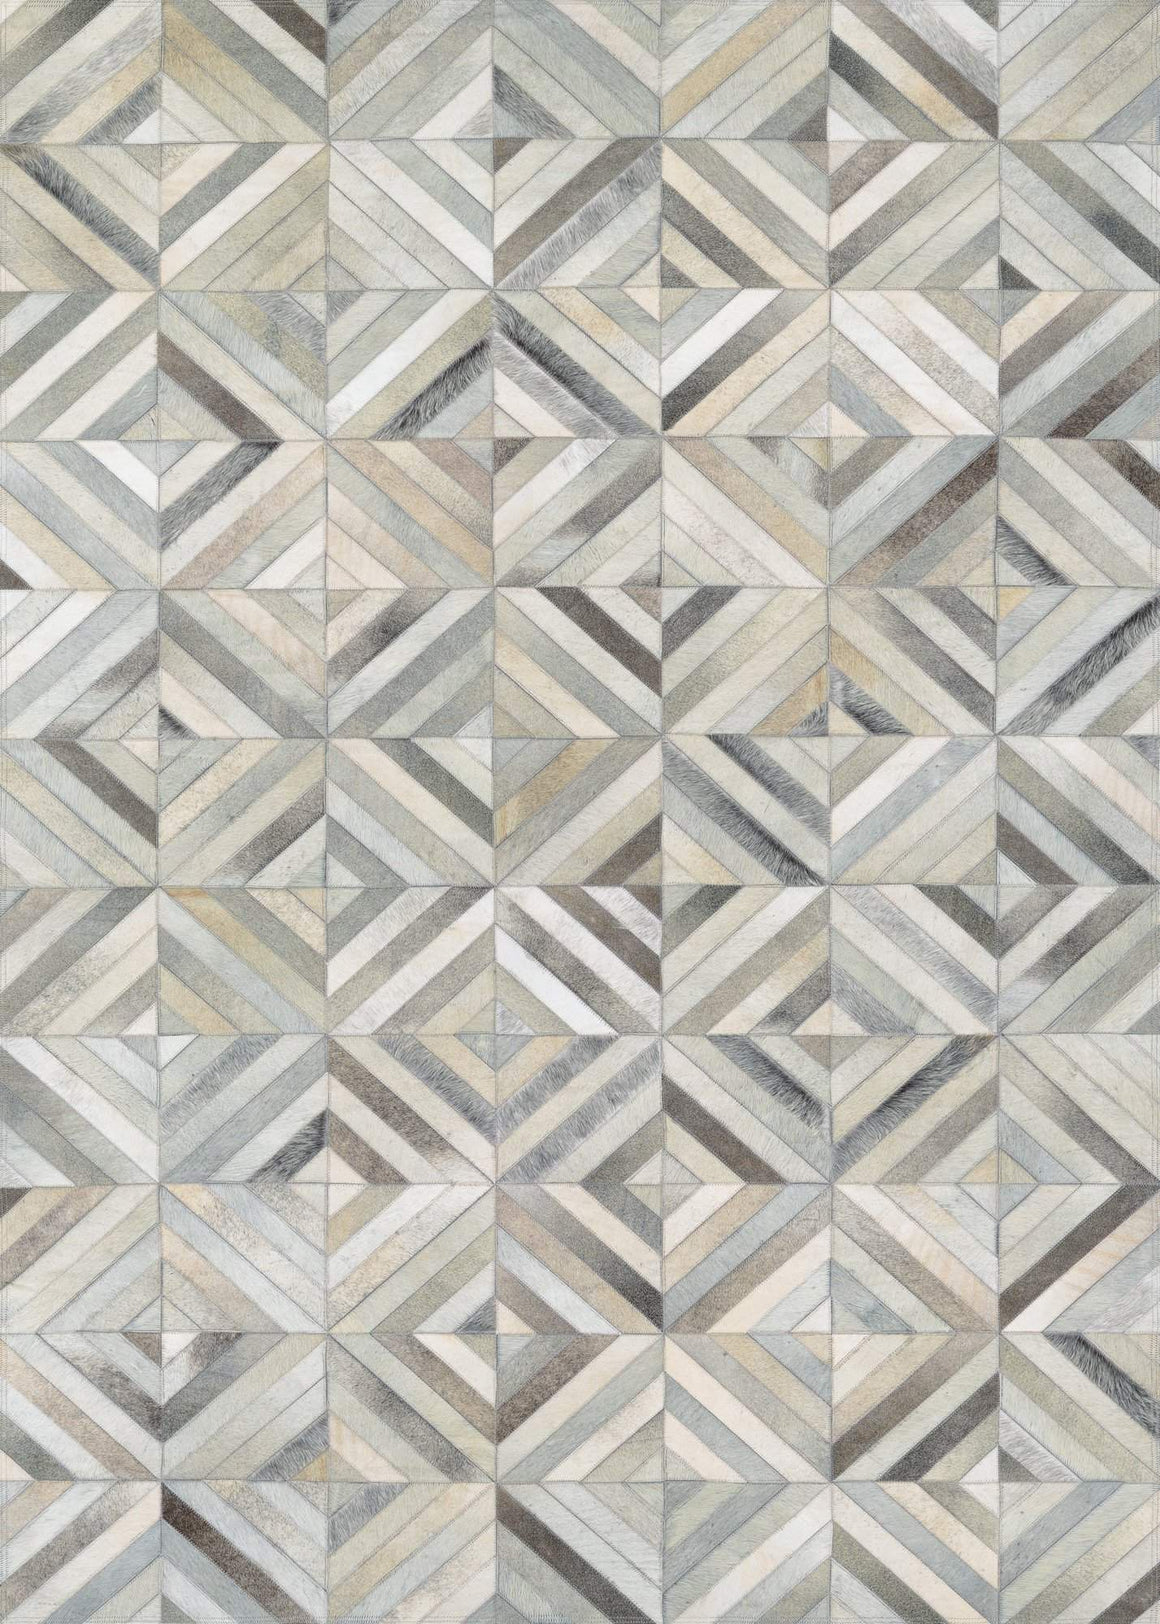 Couristan Chalet Blocks Cowhide Leather Area Rugs